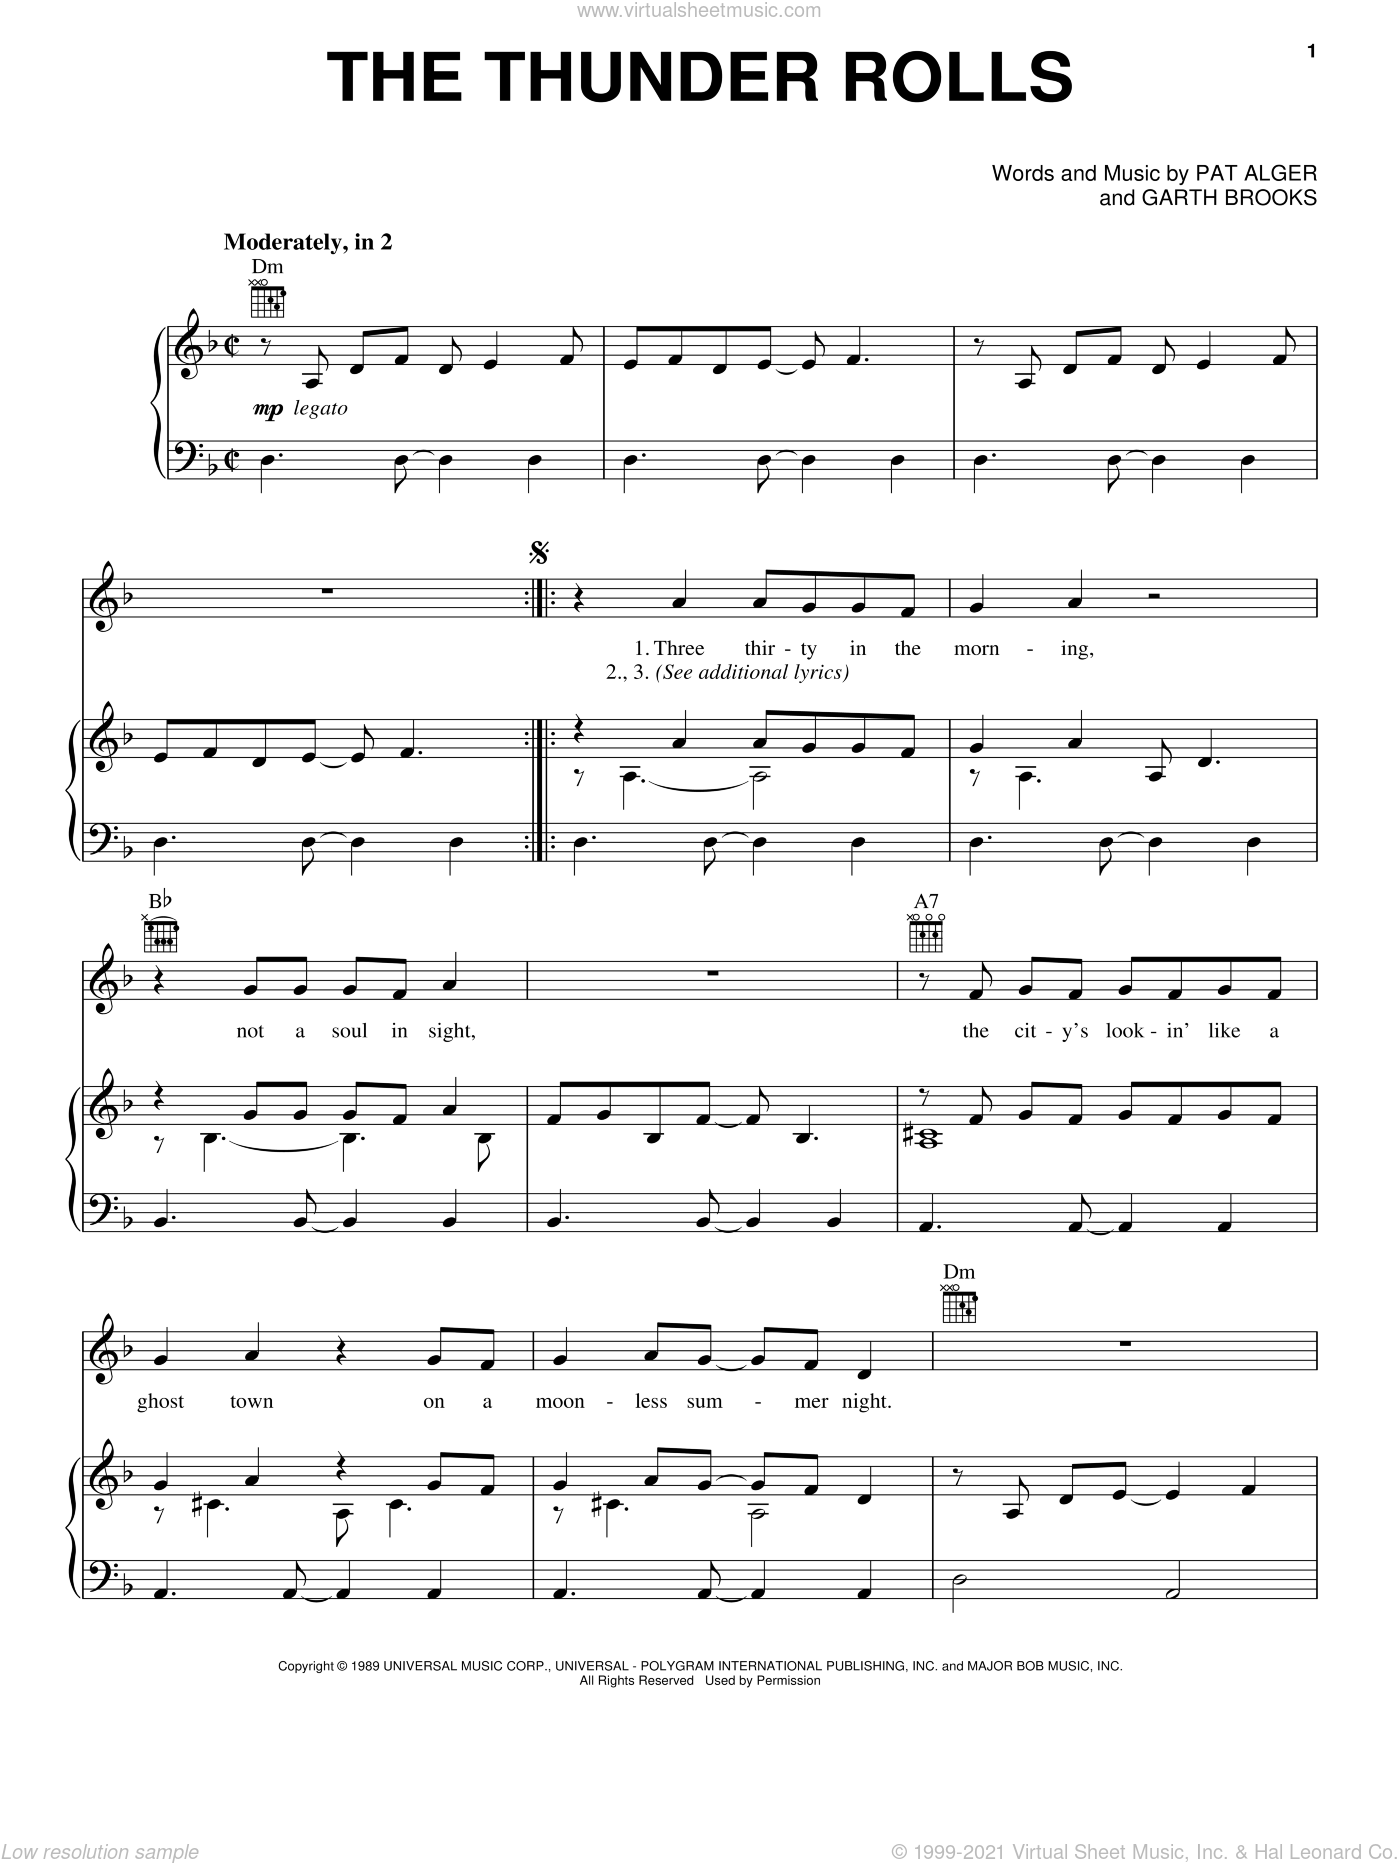 The Thunder Rolls sheet music for voice, piano or guitar by Patrick Alger and Garth Brooks. Score Image Preview.